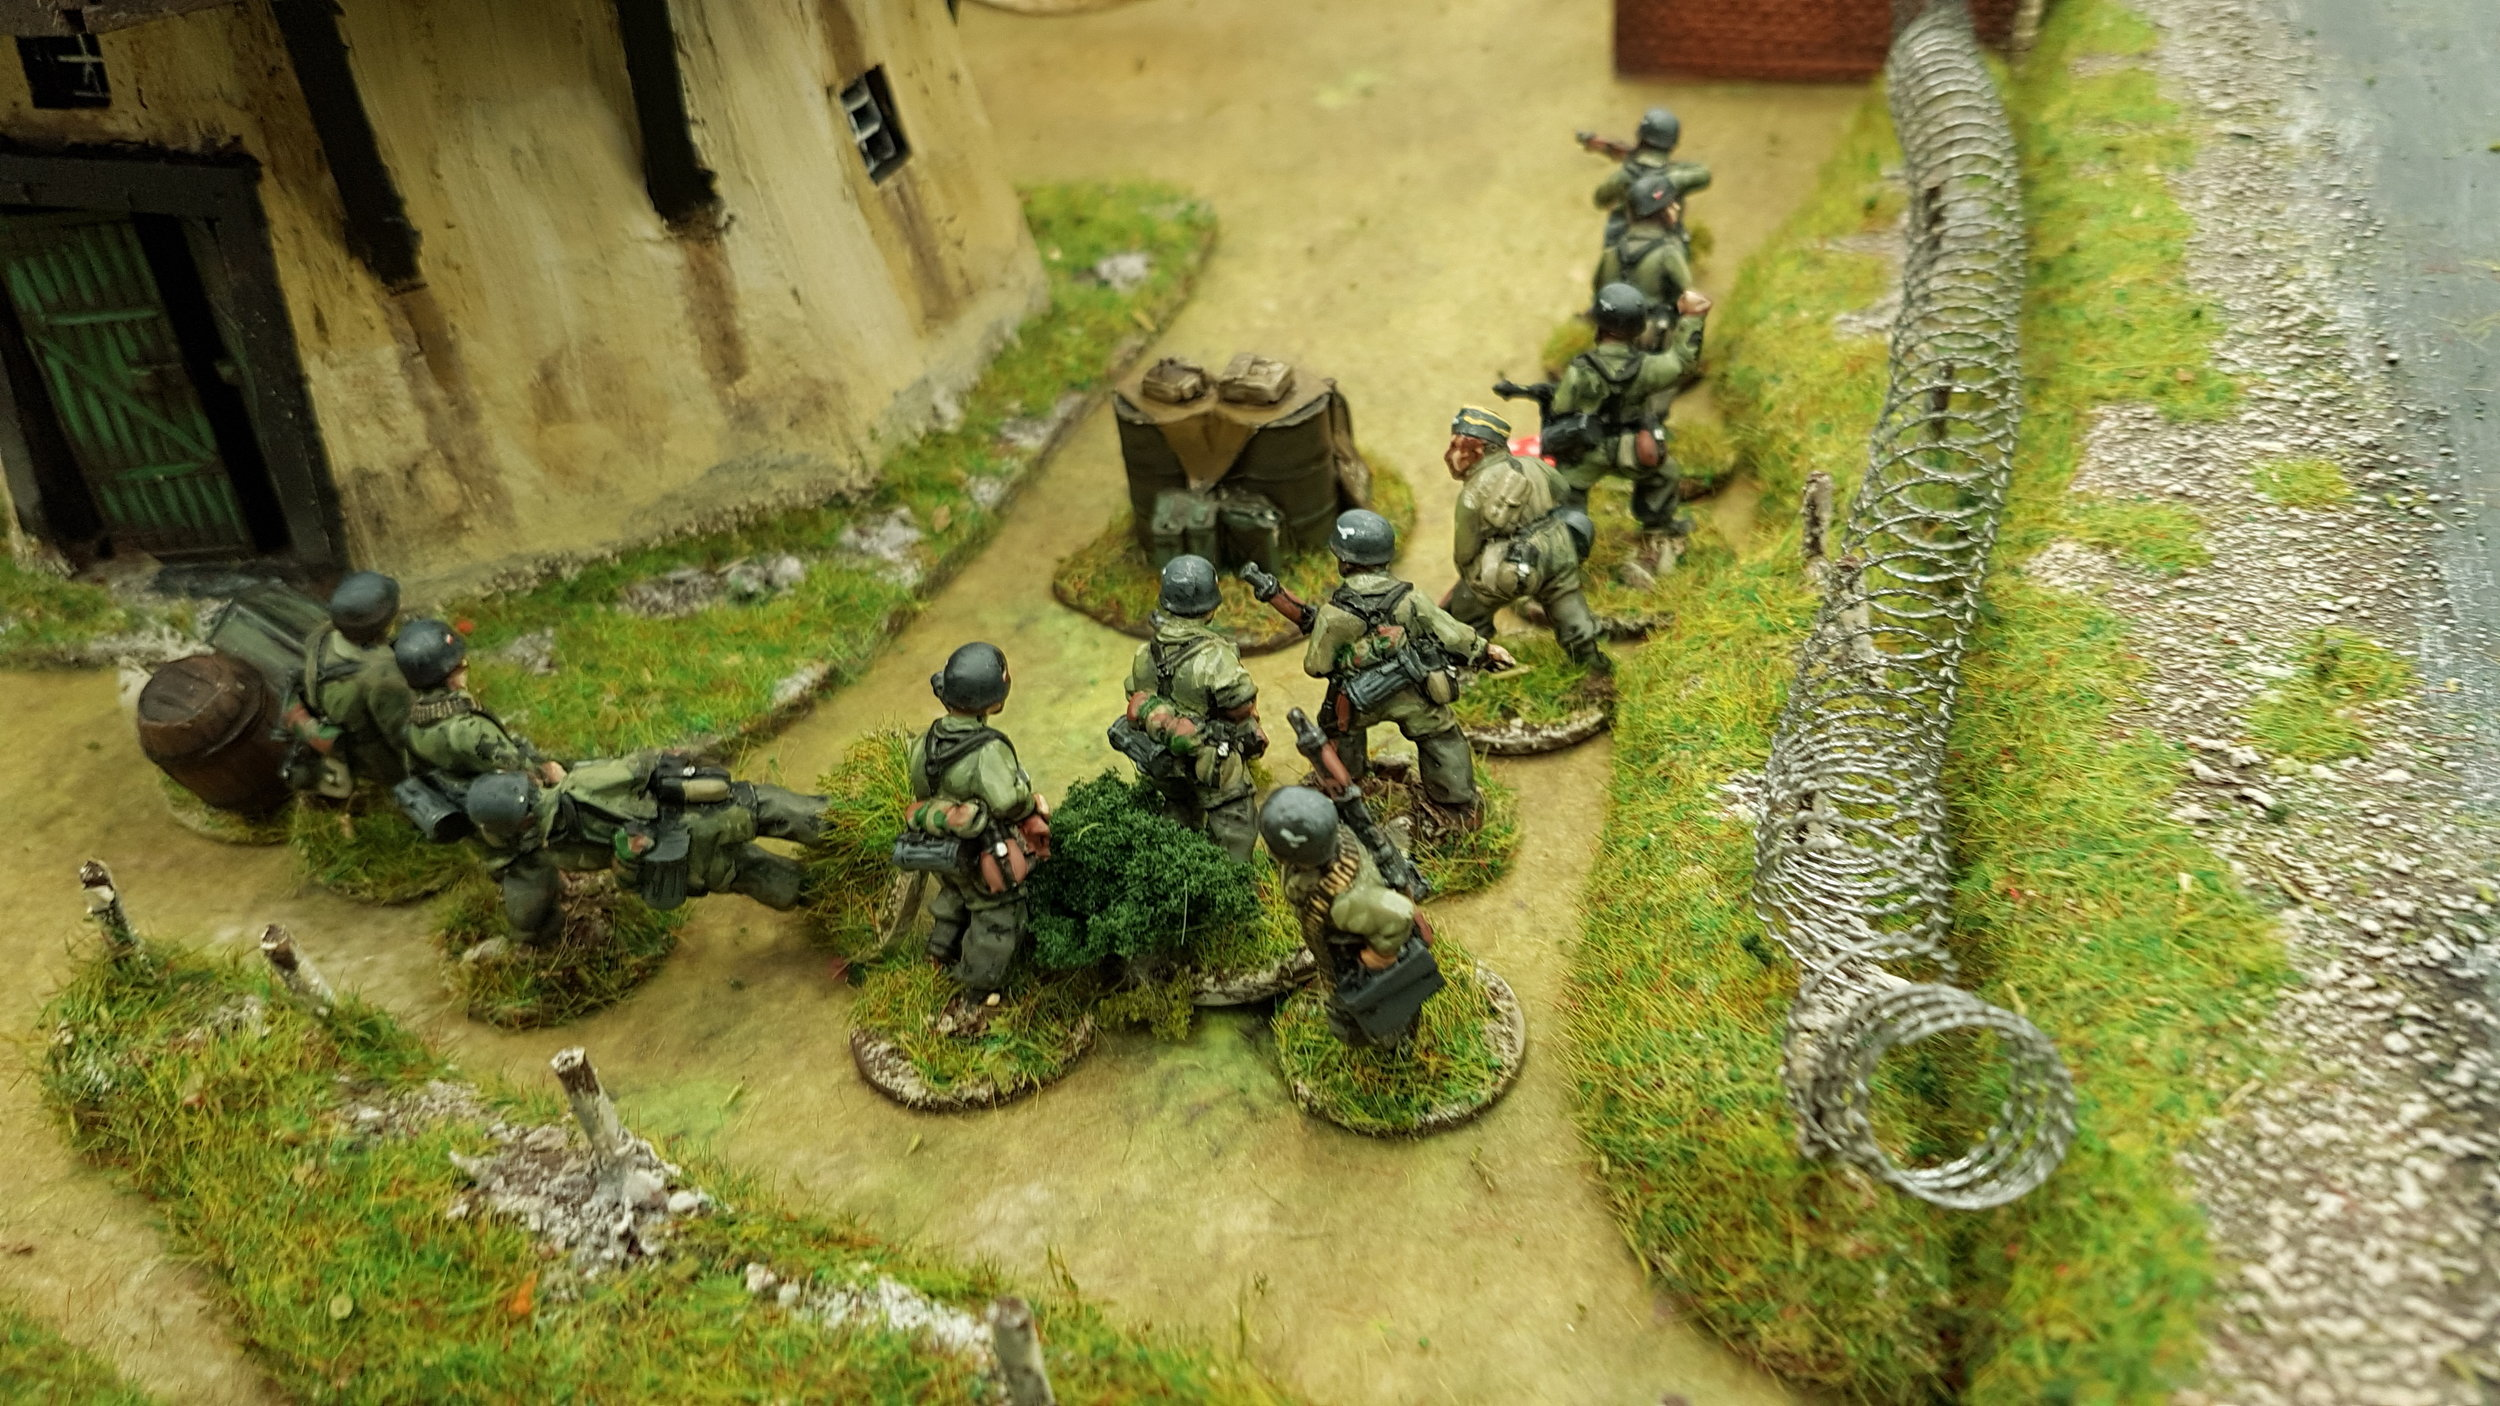 Third Fallschirmjaeger squad at the moment of their victory!